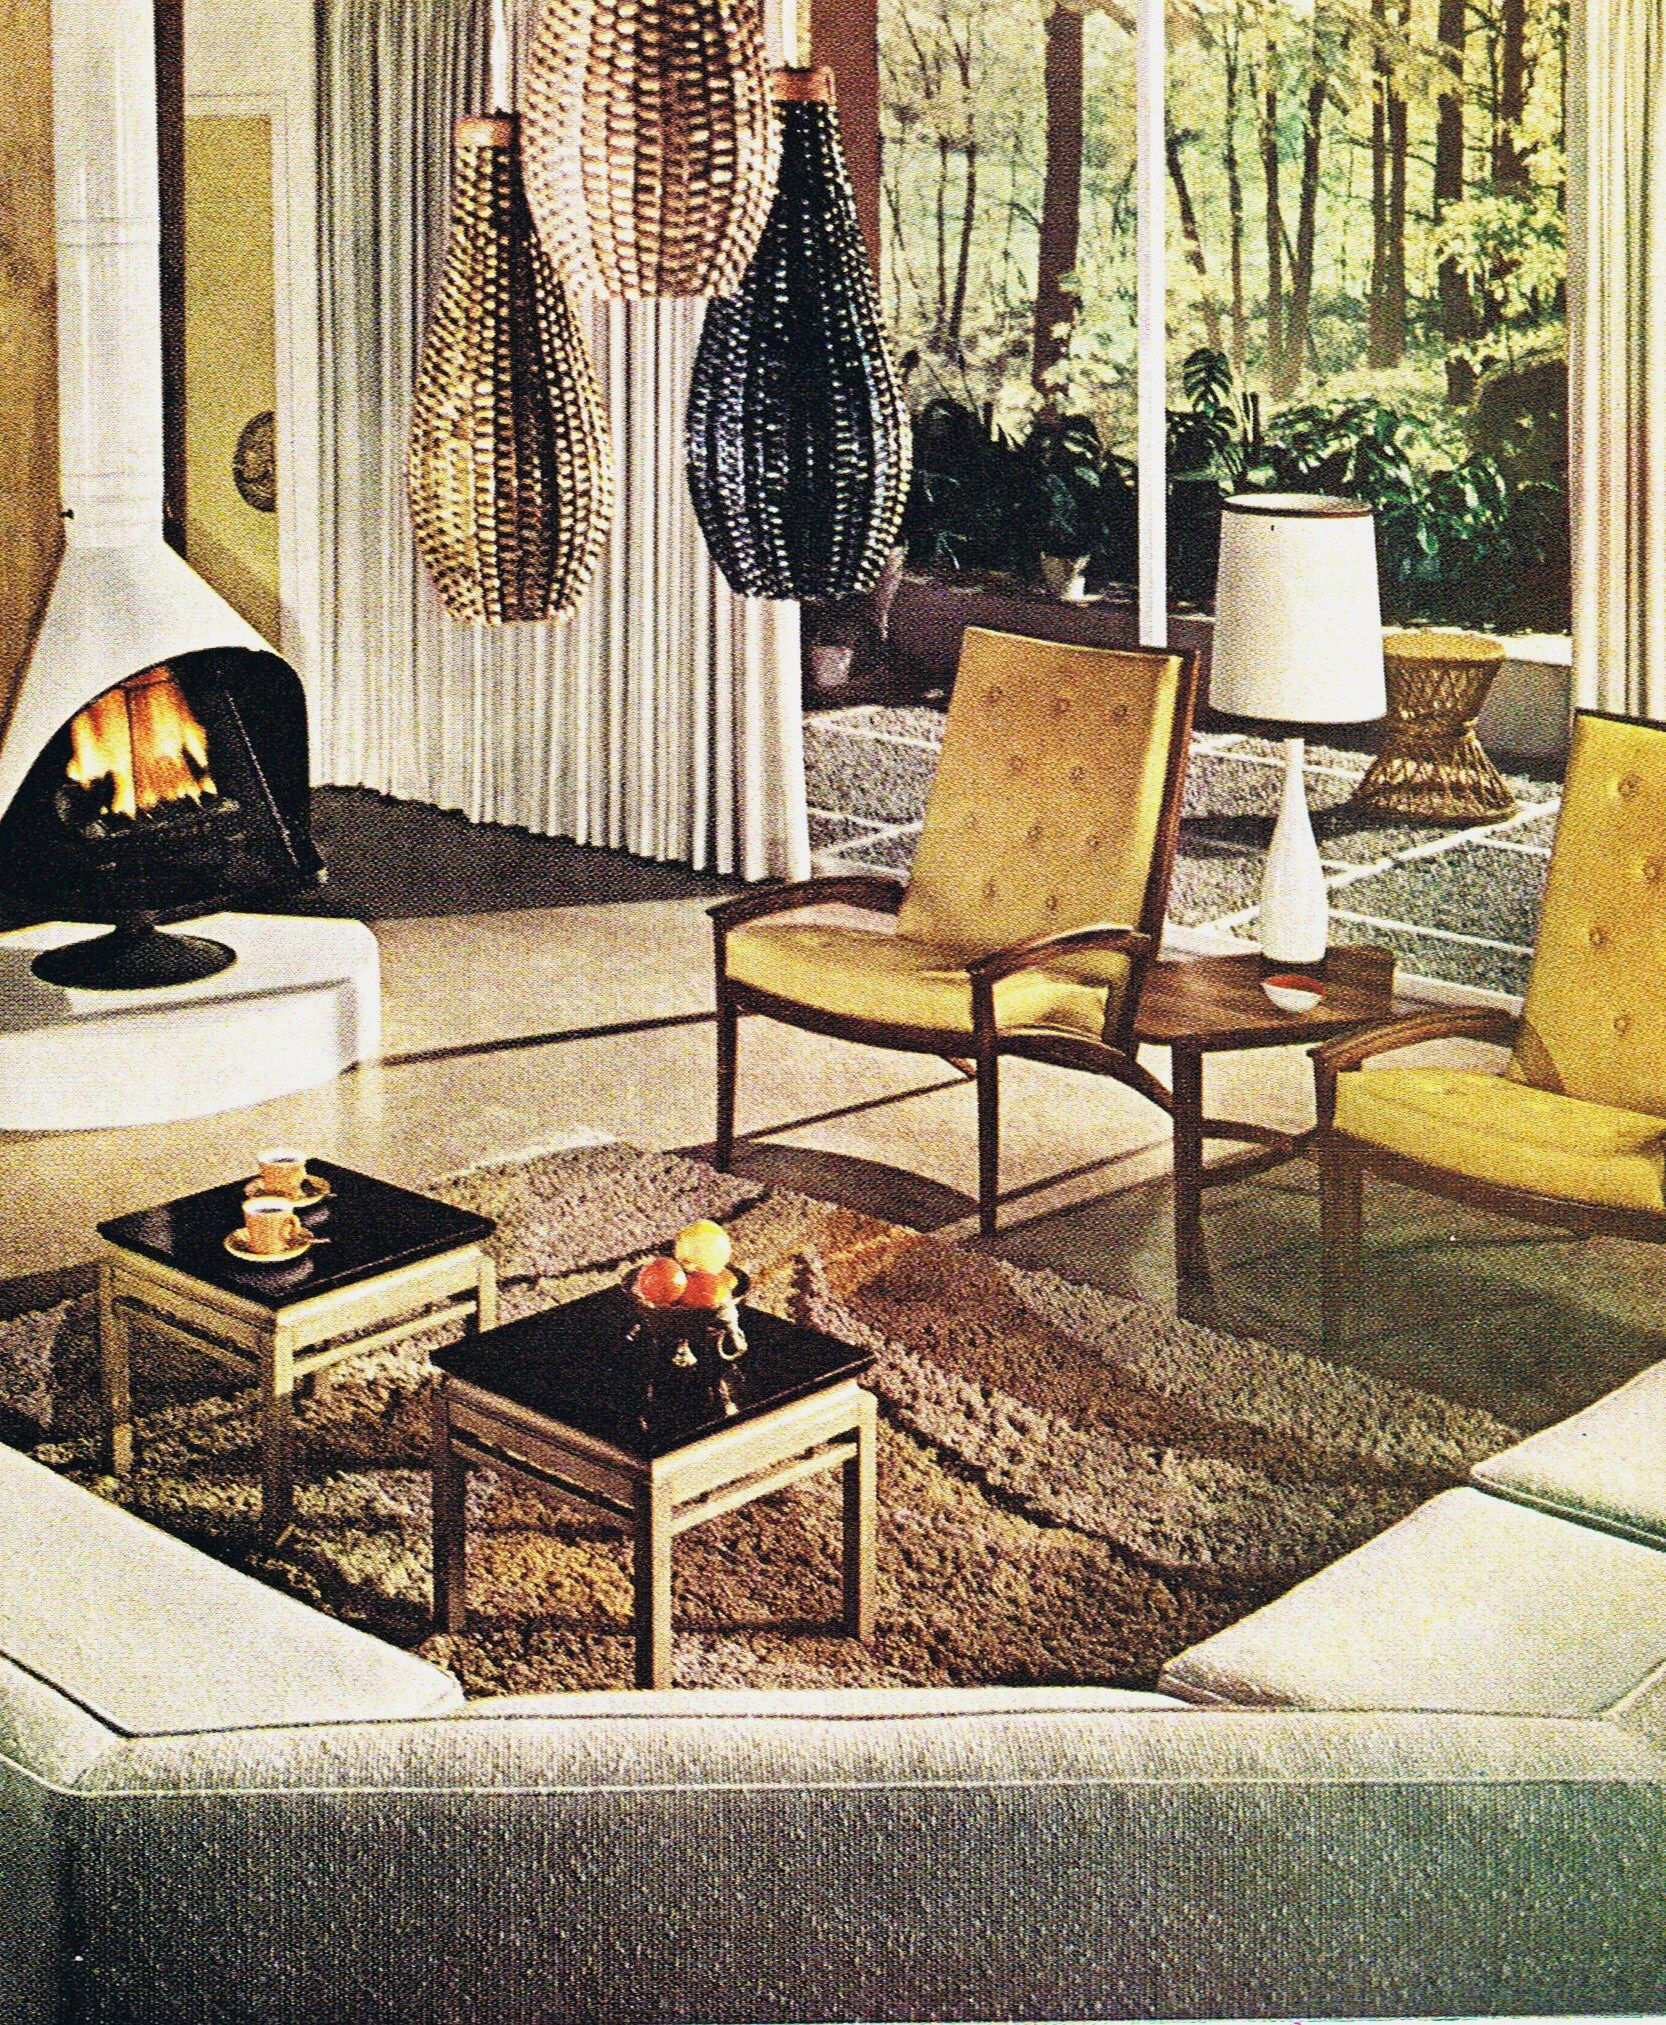 mid-1960's interior design at its best